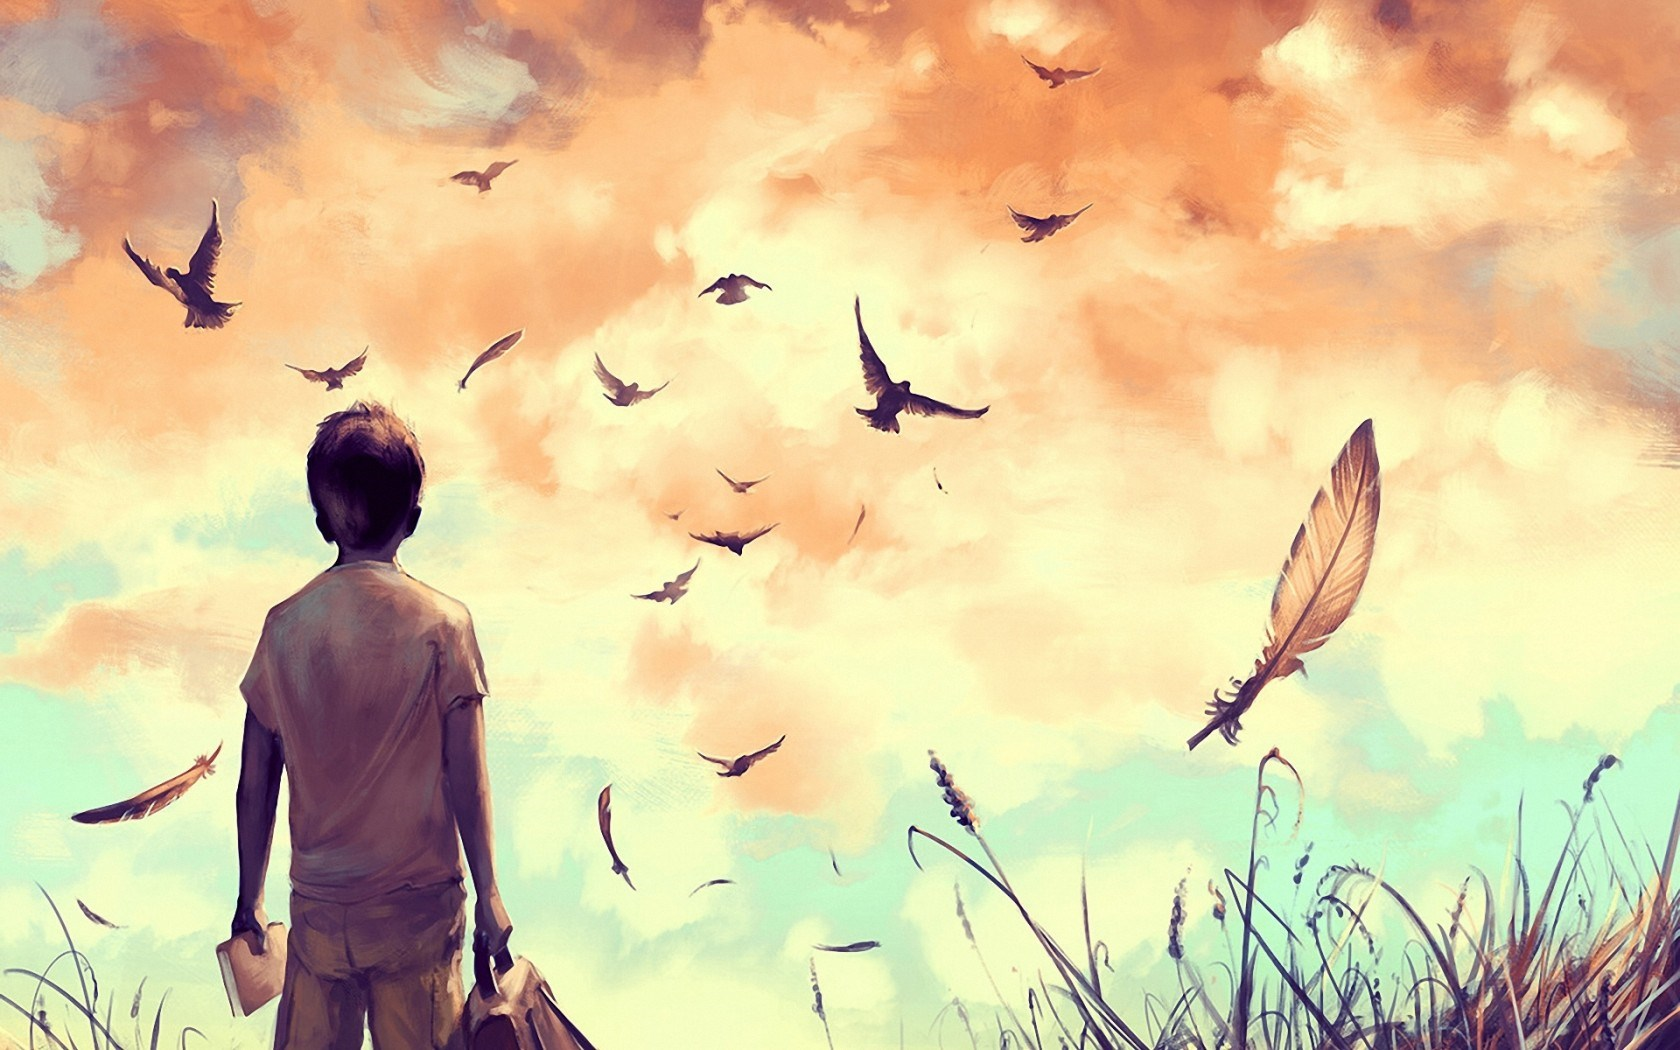 Amine drawing art boy birds feathers nature alone field